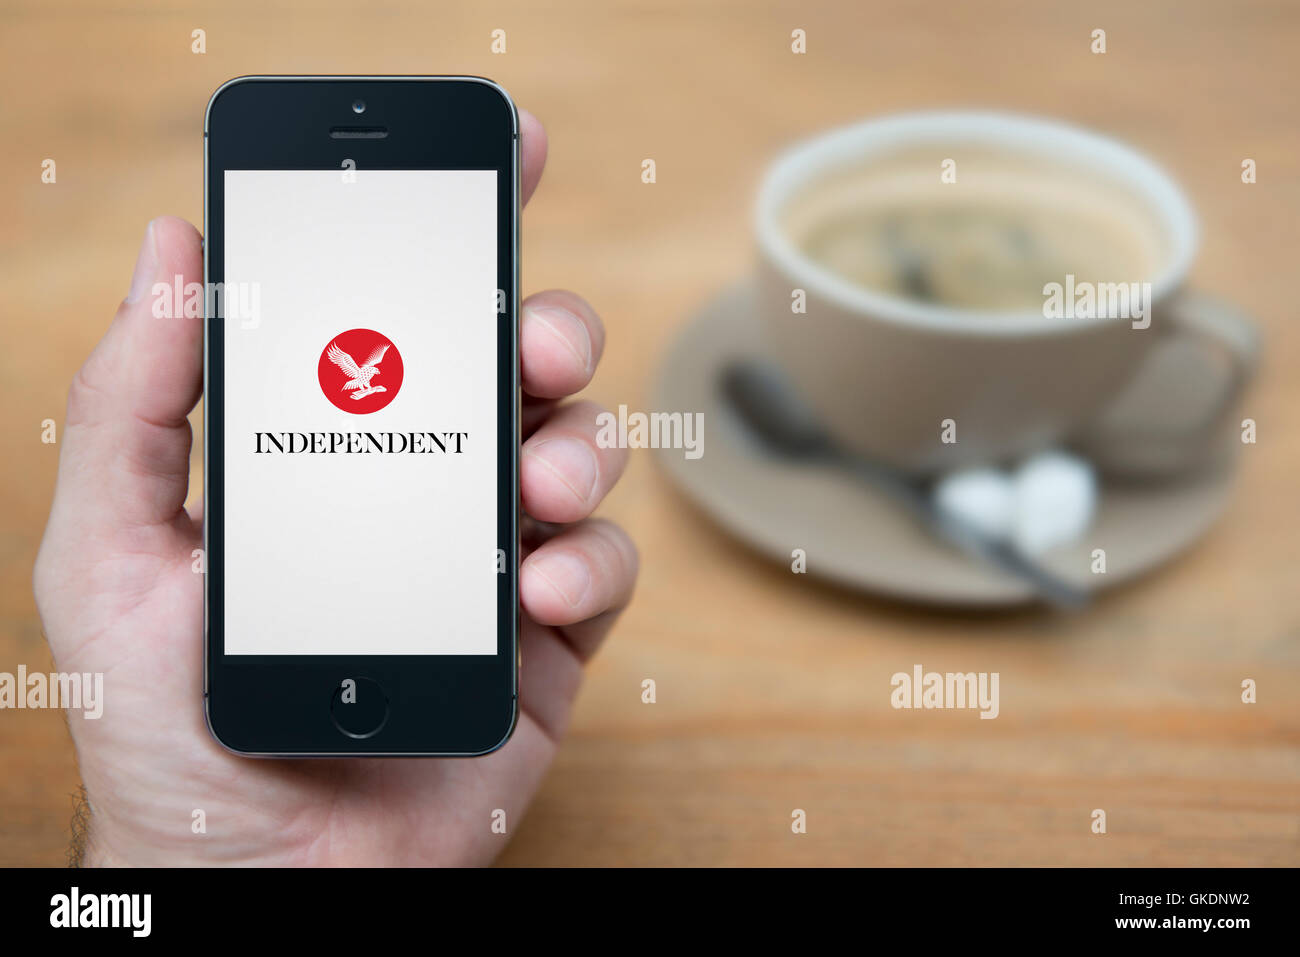 A man looks at his iPhone which displays the Independent logo, while sat with a cup of coffee (Editorial use only). - Stock Image